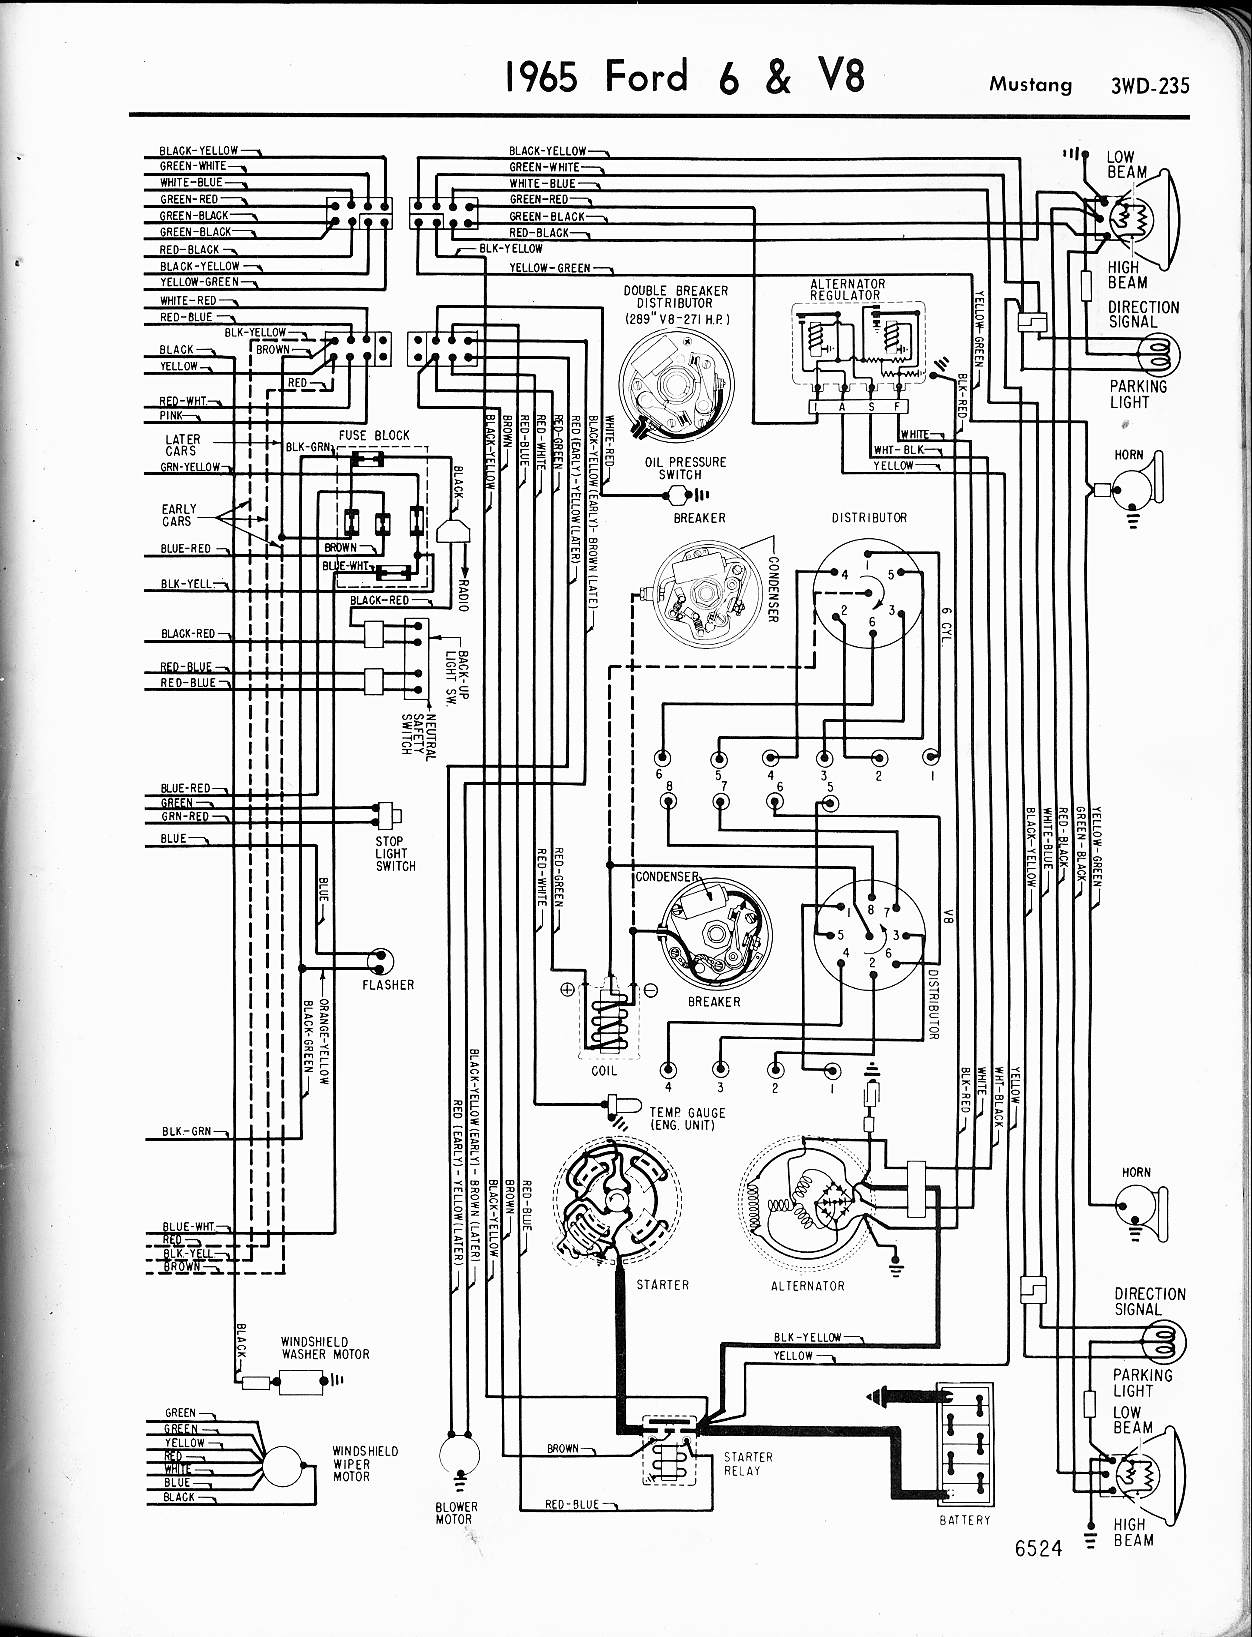 300 fourtrax wiring diagram 400ex wiring diagram wiring